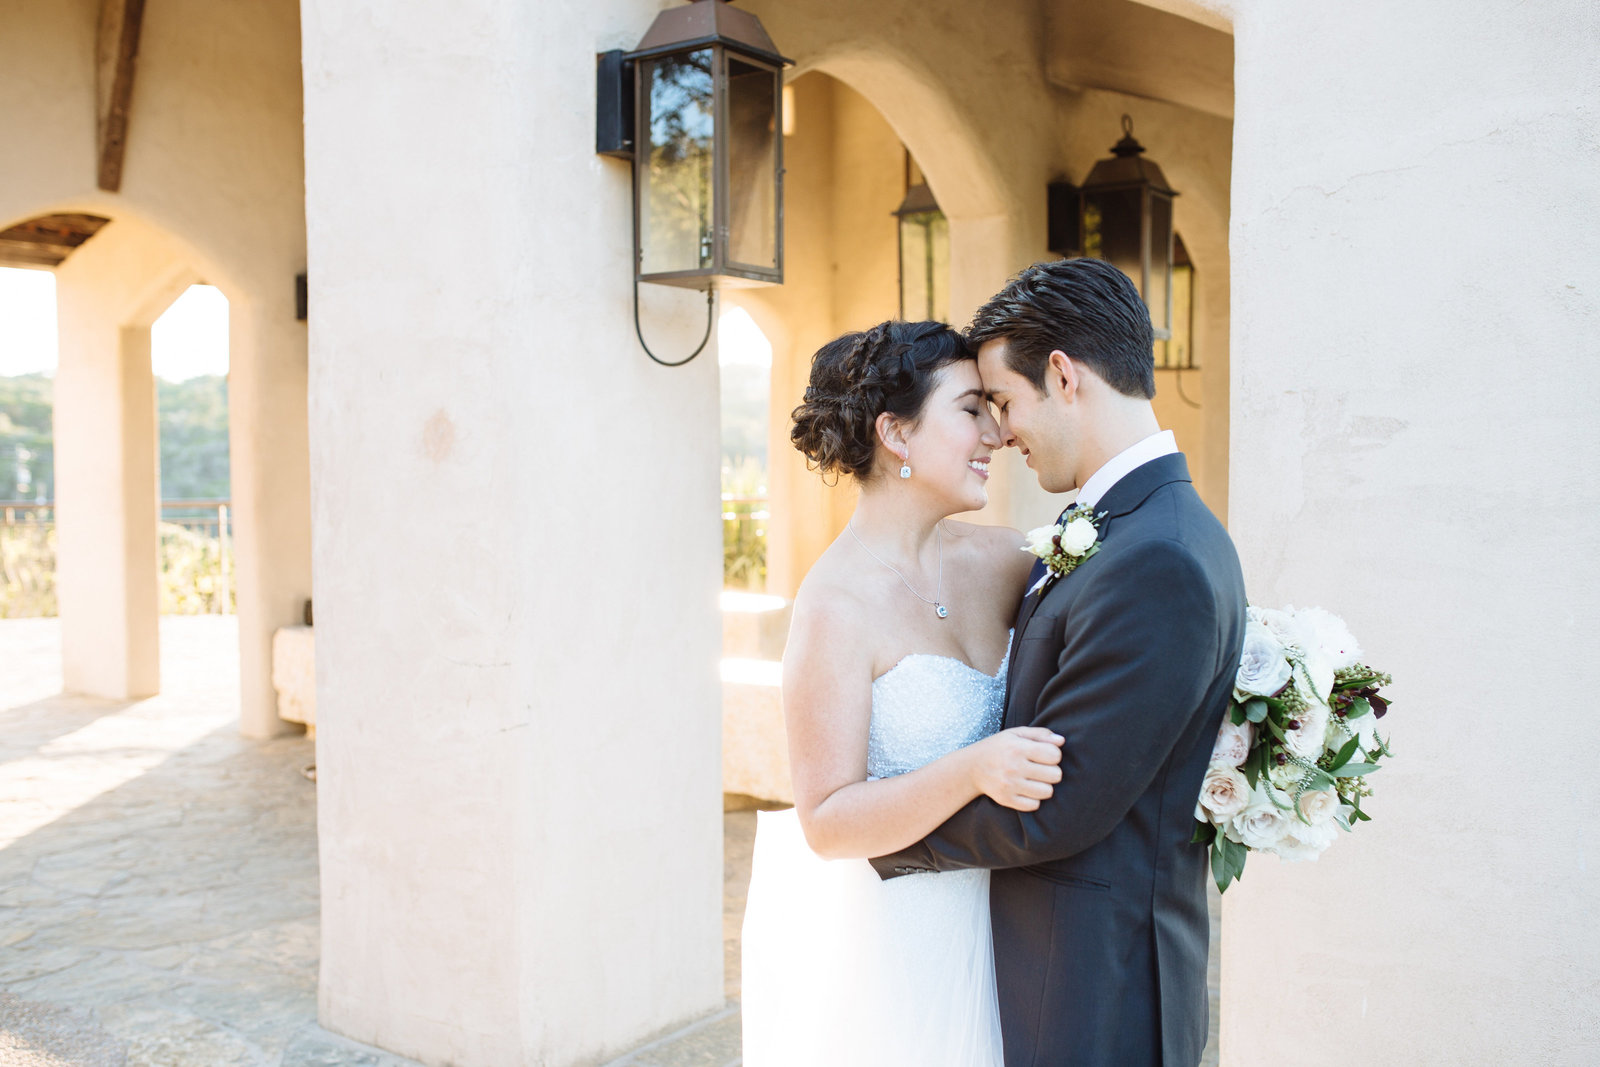 austin wedding photographers love chapel dulcinea, a hill country wedding venue with an open air chapel